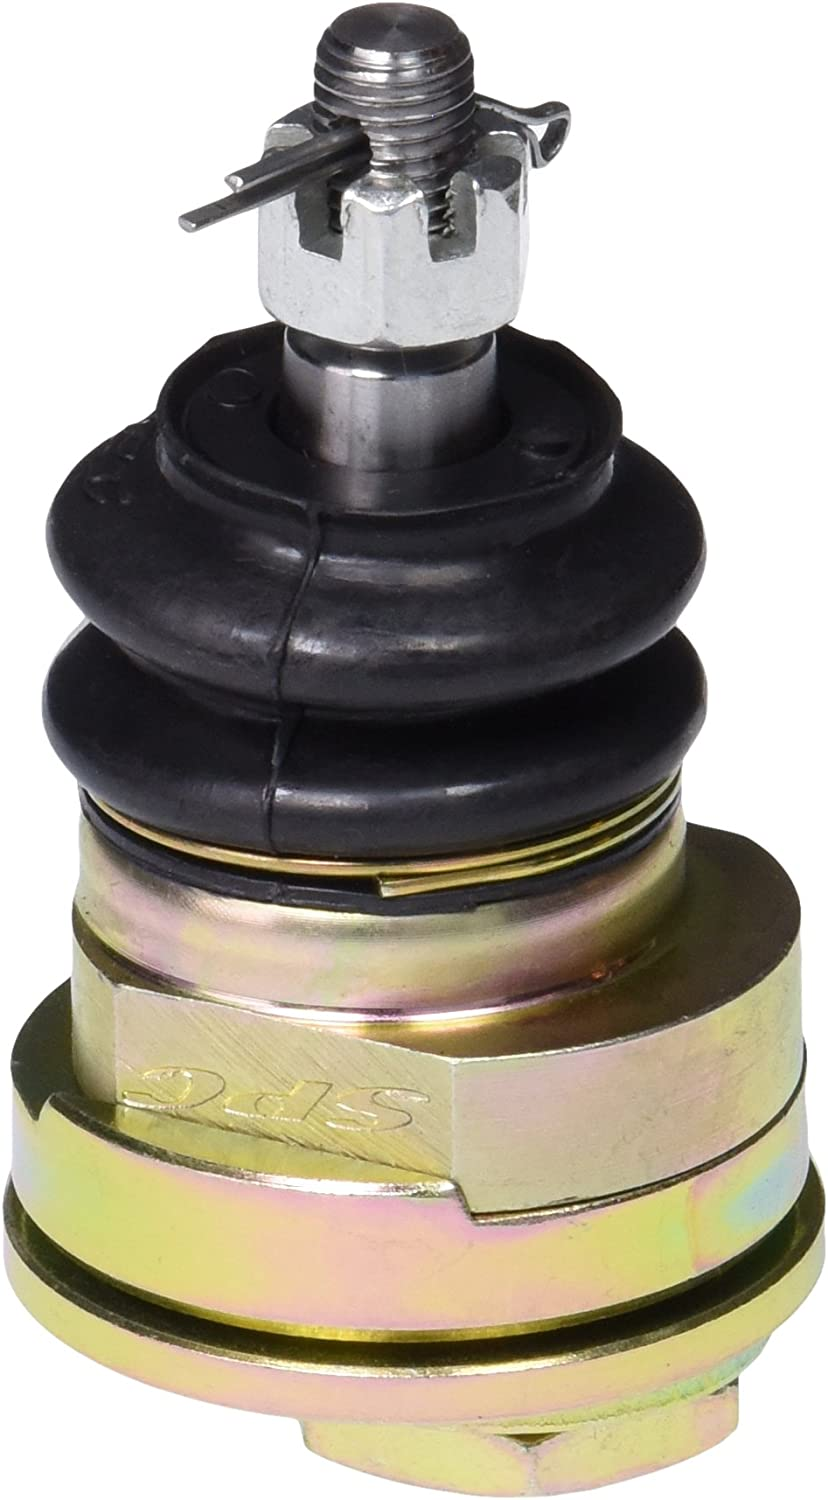 Washington Mall Specialty Products Company 67525 1.5° Adjustable low-pricing Joint Ball f